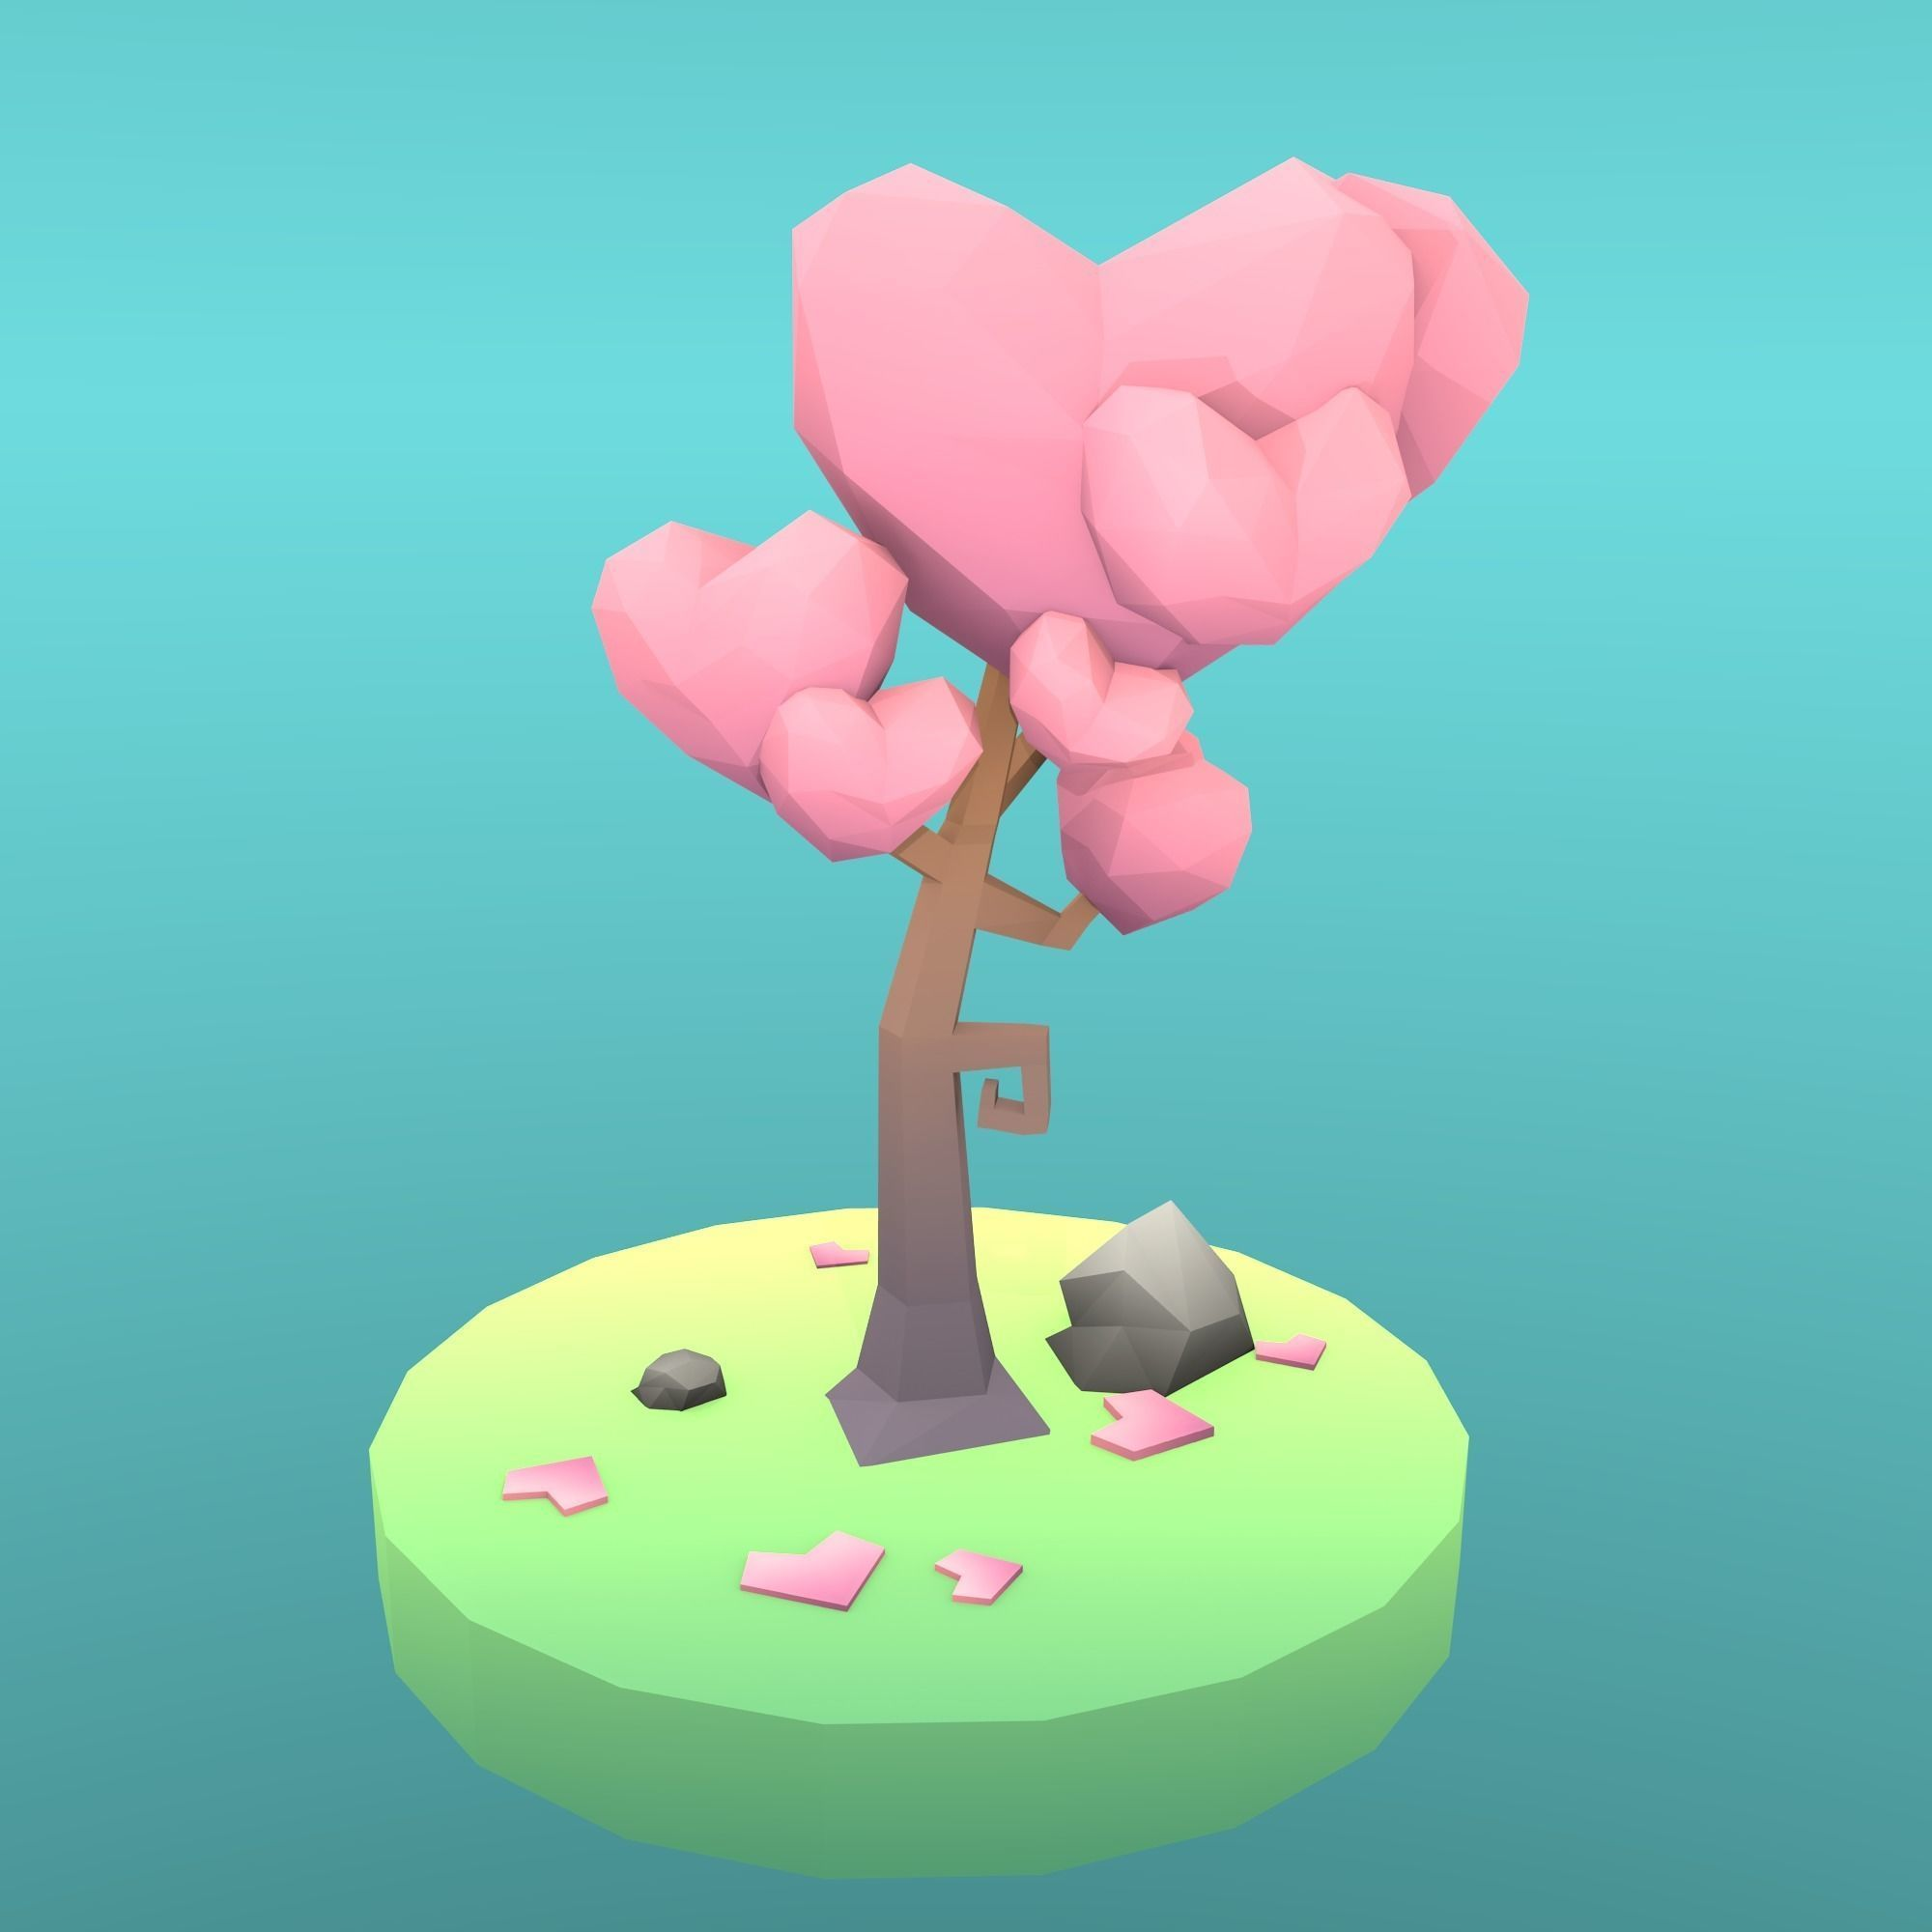 Low Poly Tree - The Tree Of Hearts